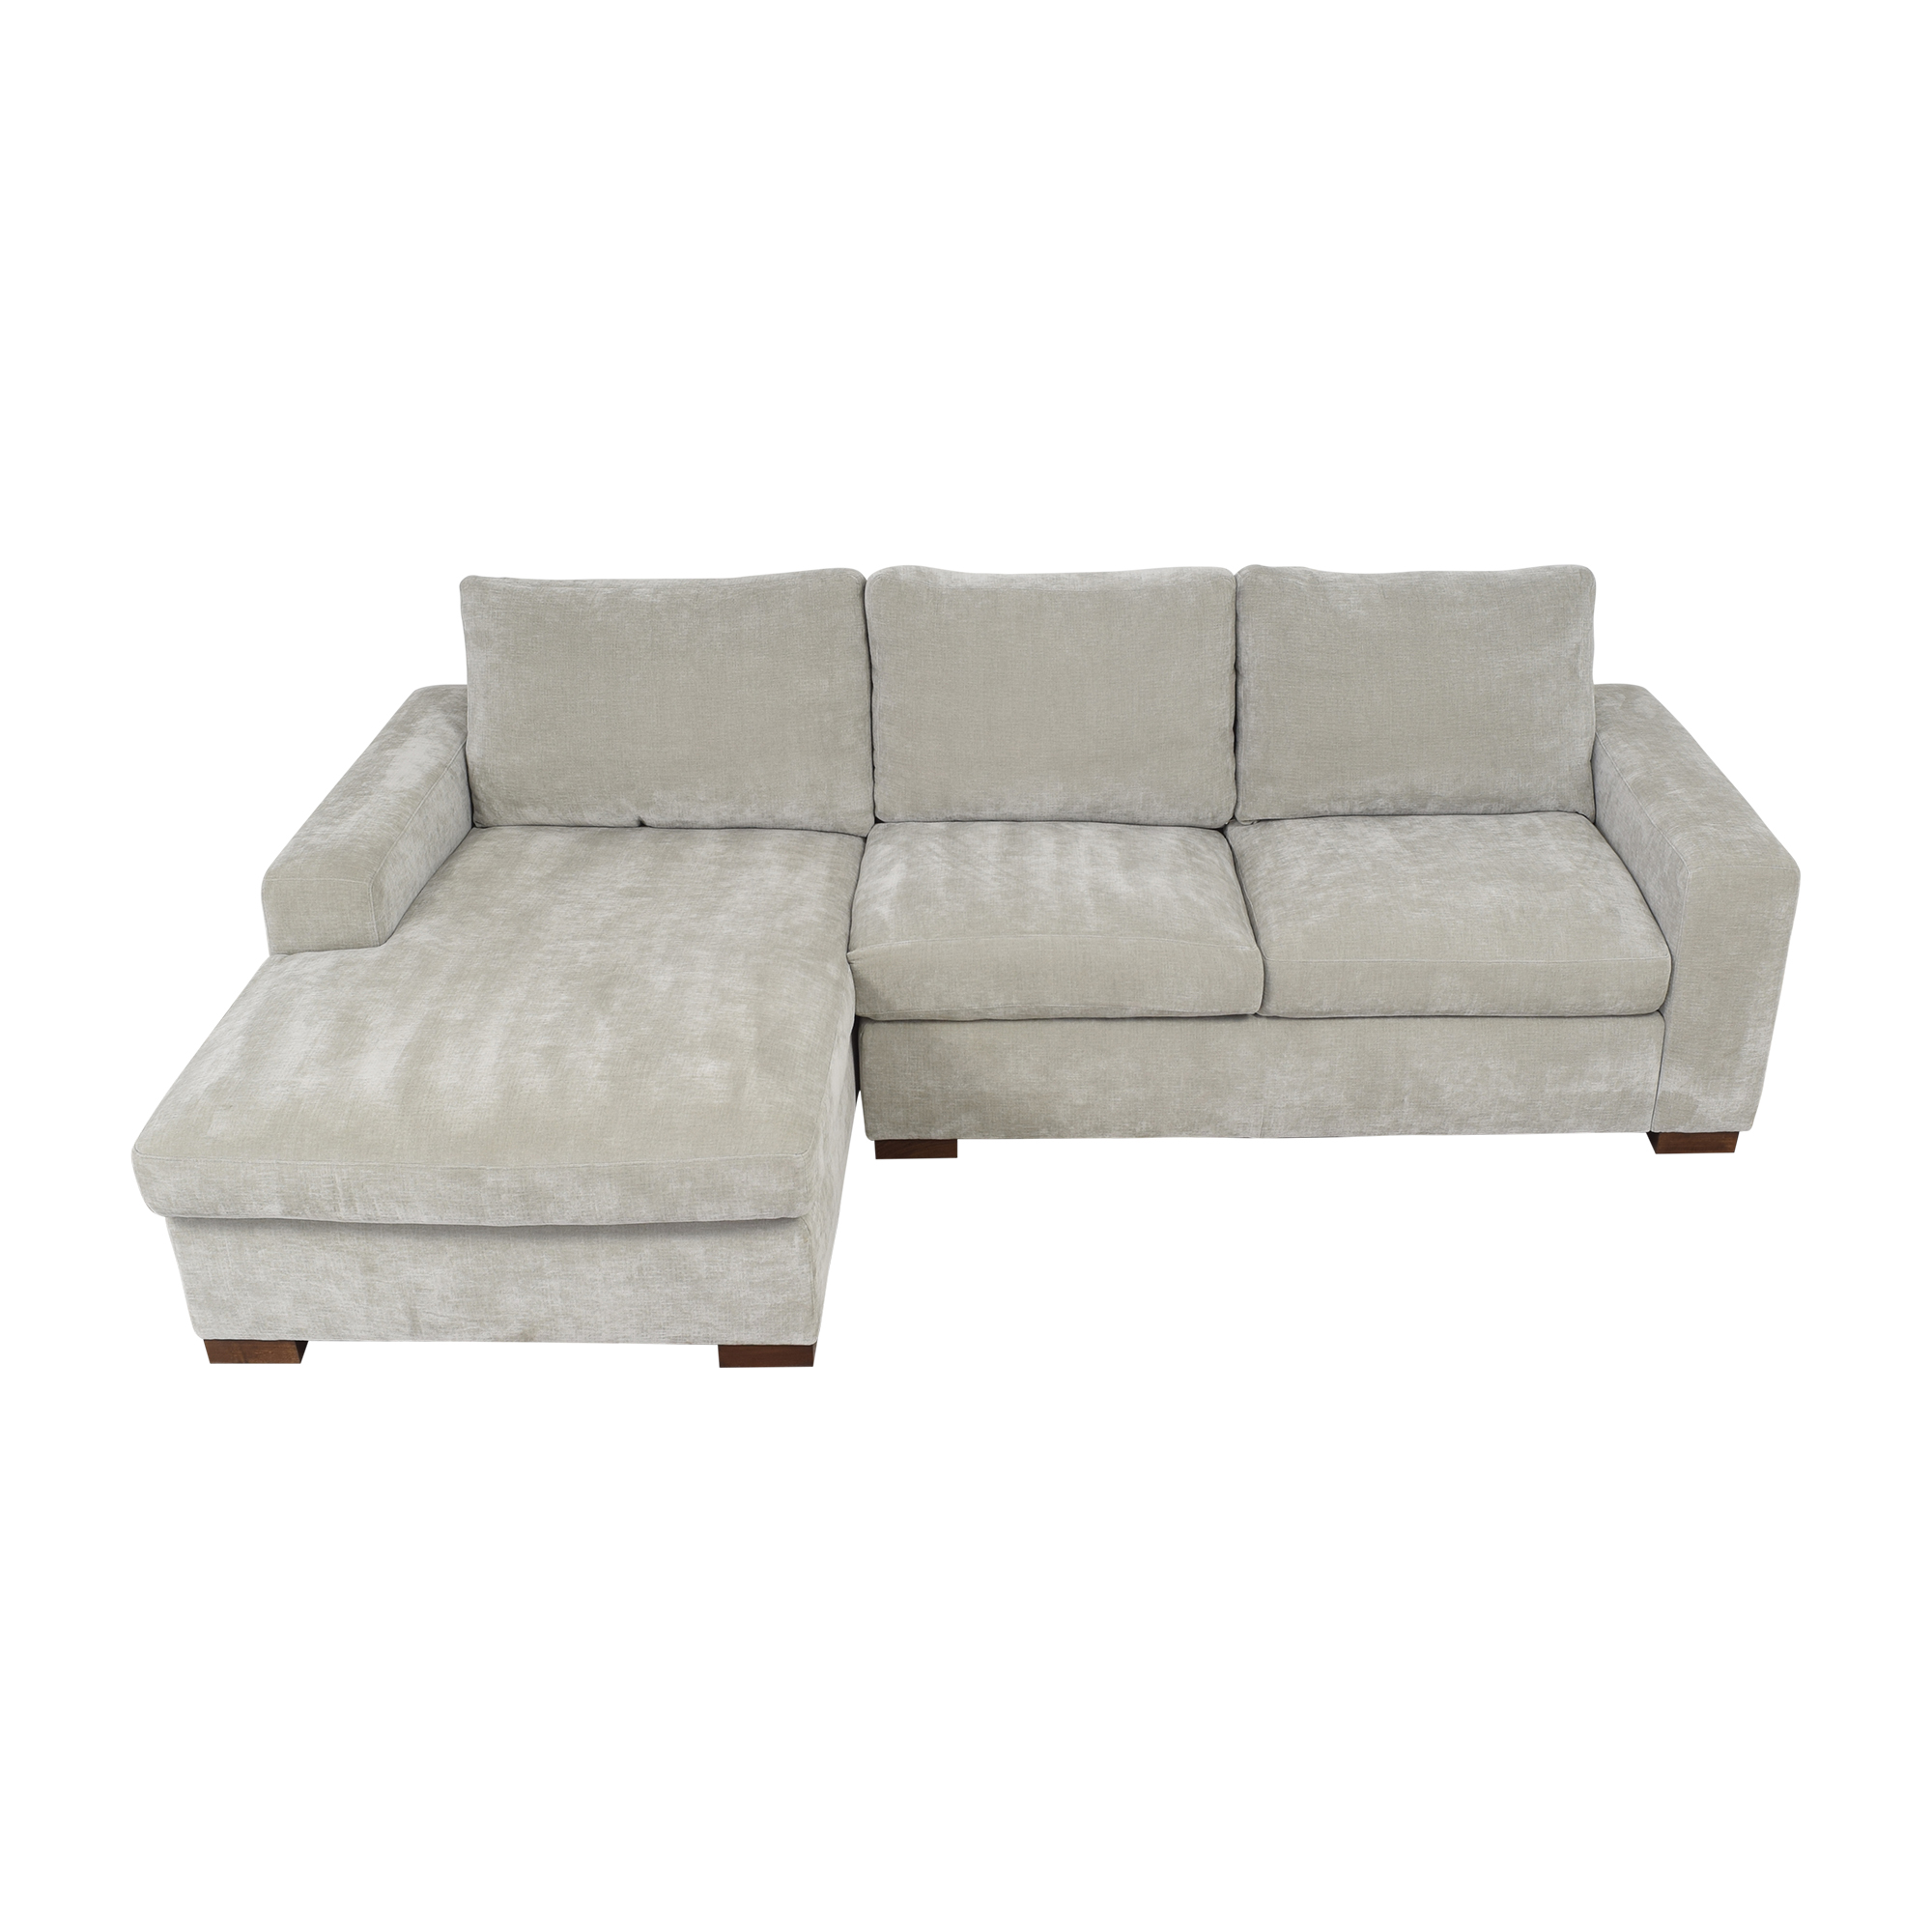 shop BenchMade Modern Couch Potato Sofa With Chaise BenchMade Modern Sofas